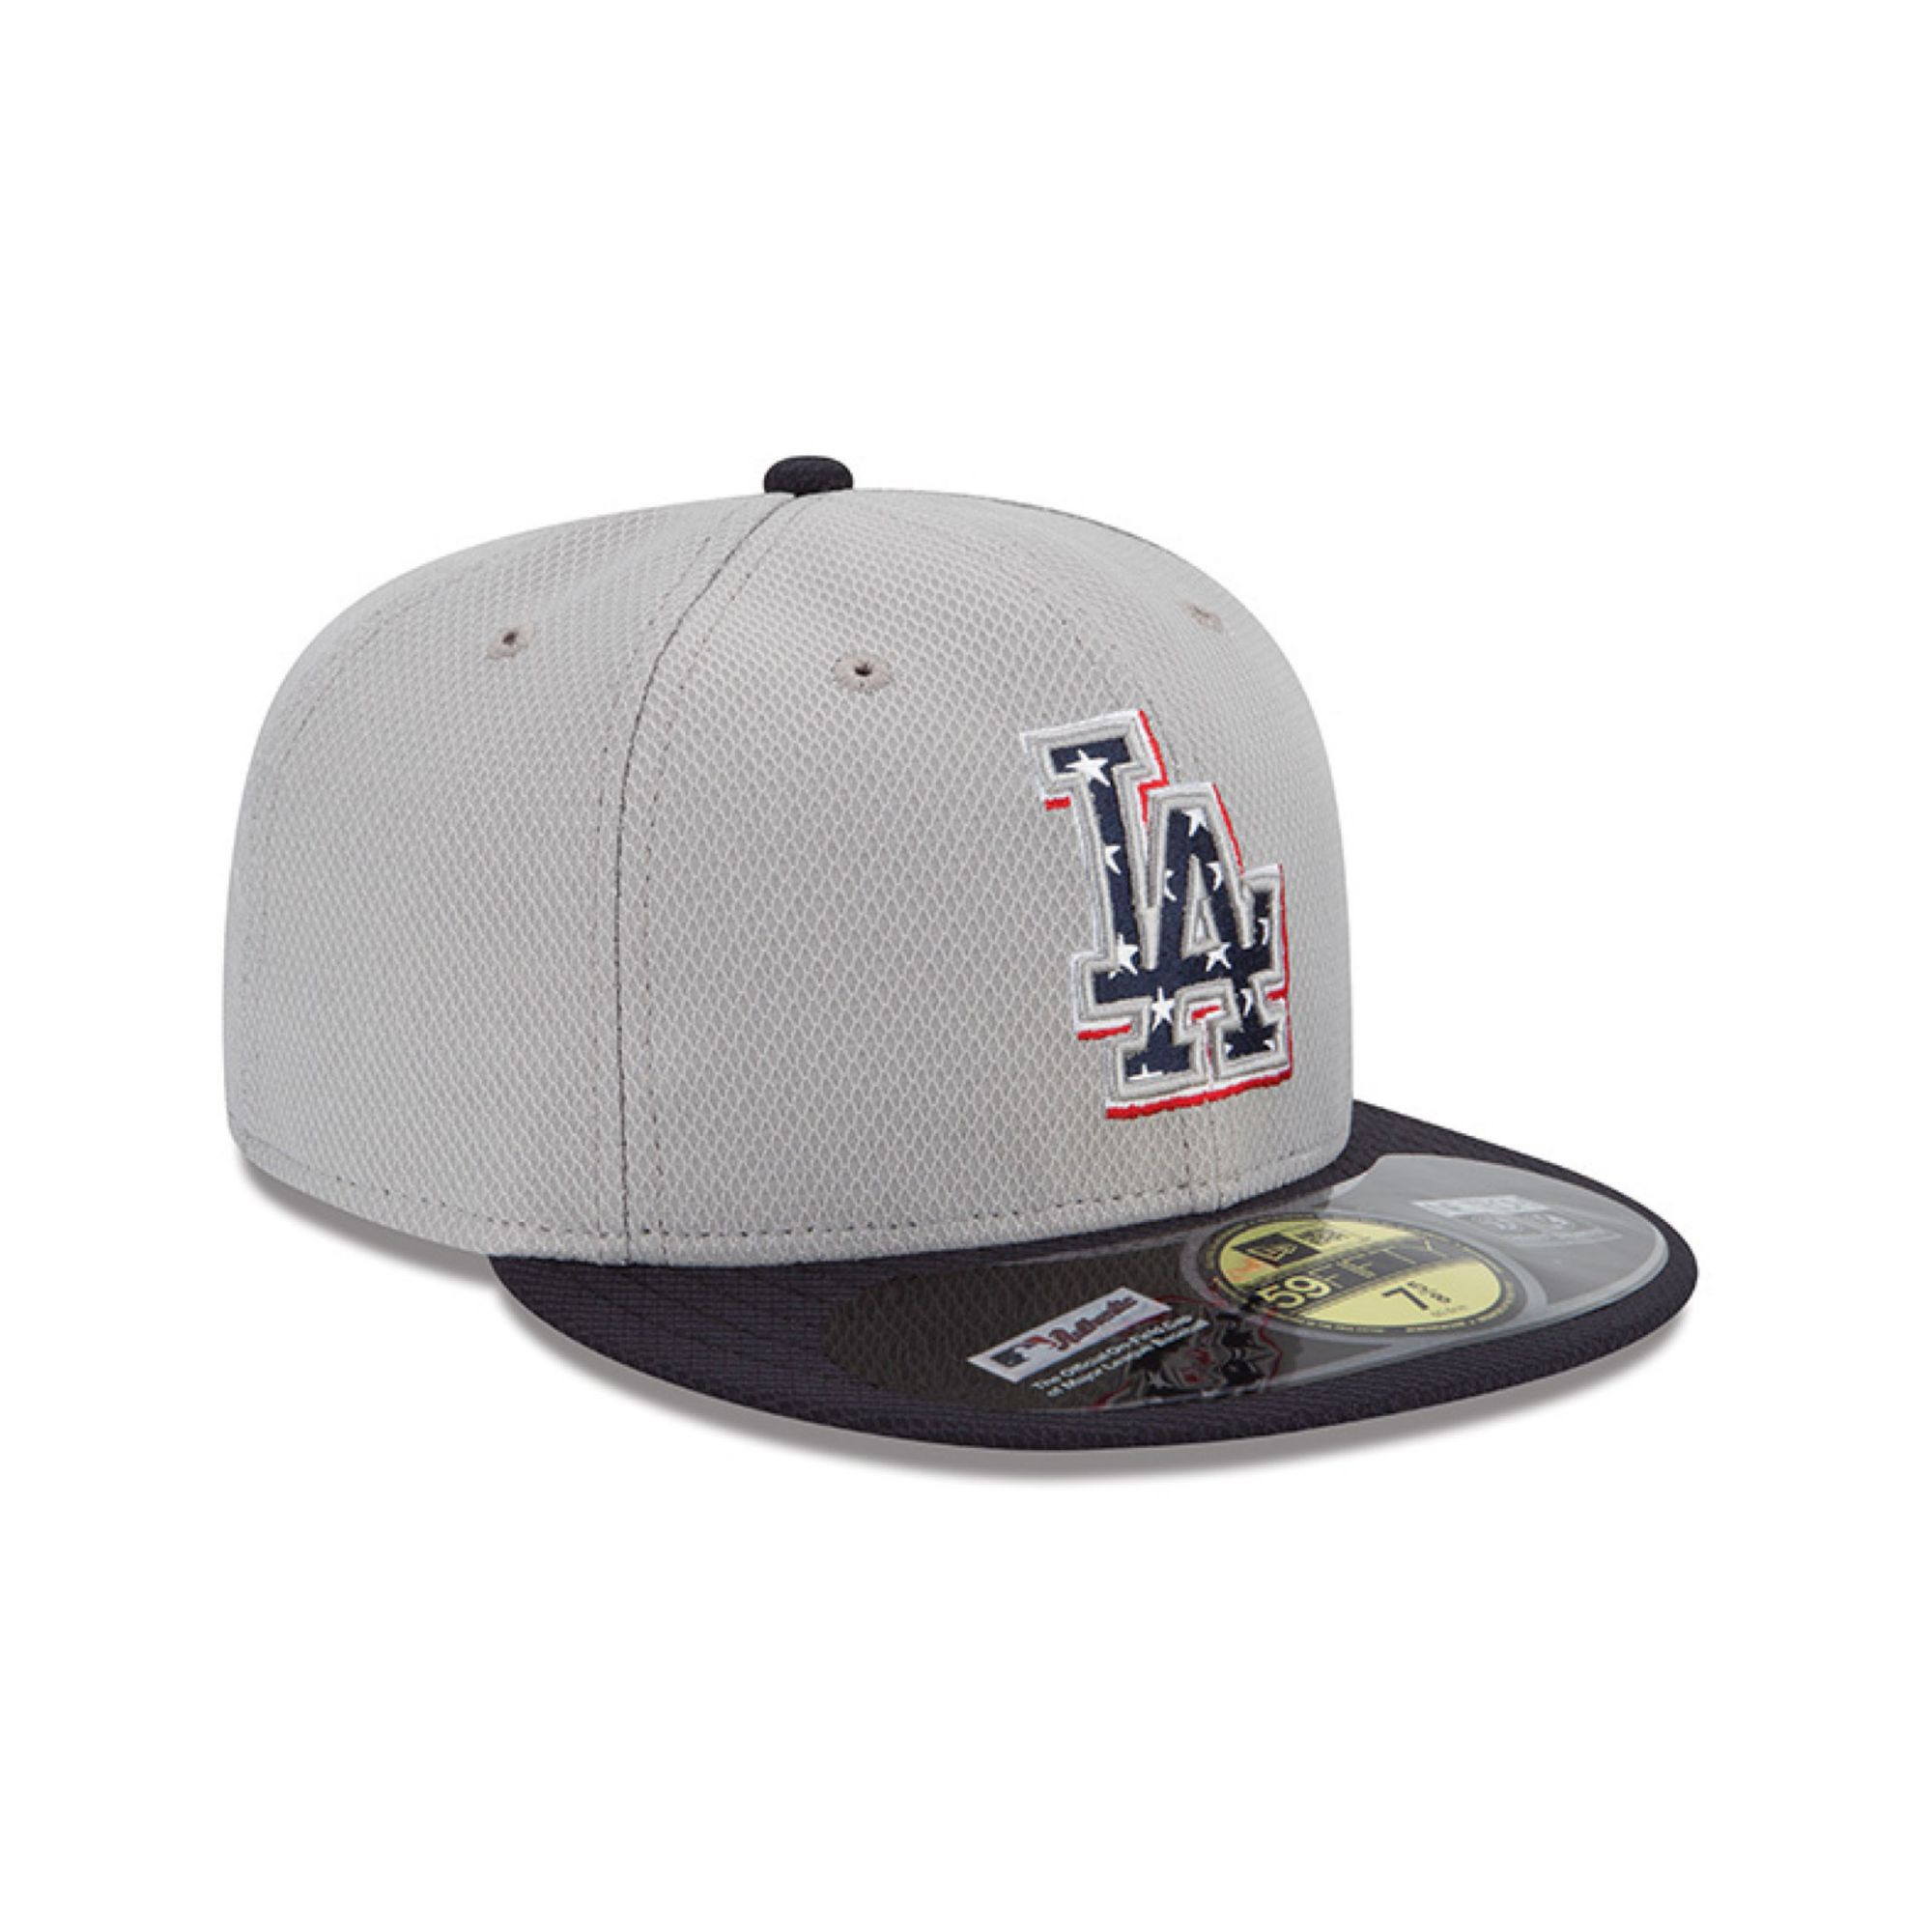 ee5ad2bd5e1701 ... germany lyst ktz los angeles dodgers mlb july 4th stars stripes 59fifty  f16b3 4d014 clearance 2016 all star game hats from new era ...